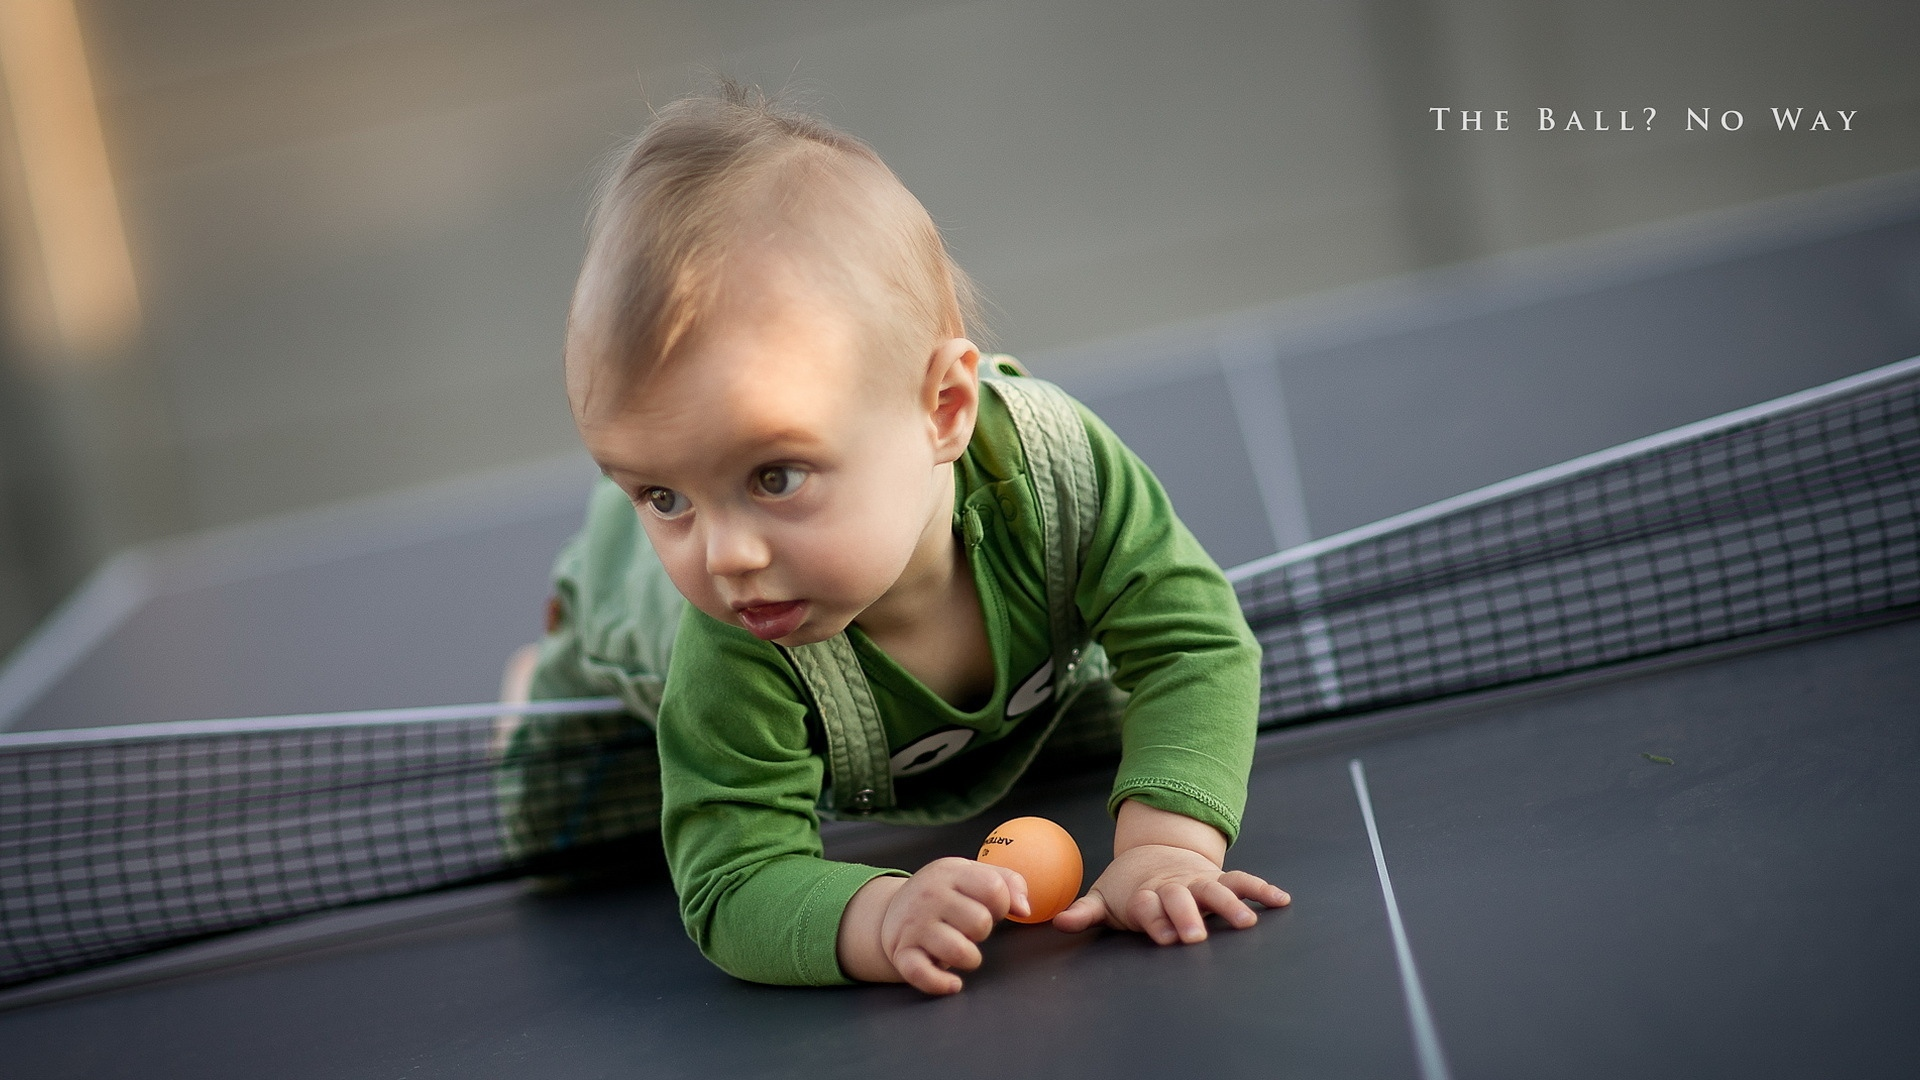 Download Wallpaper 1920x1080 Children Table Tennis Lie Table Full Hd 1080p Hd Background